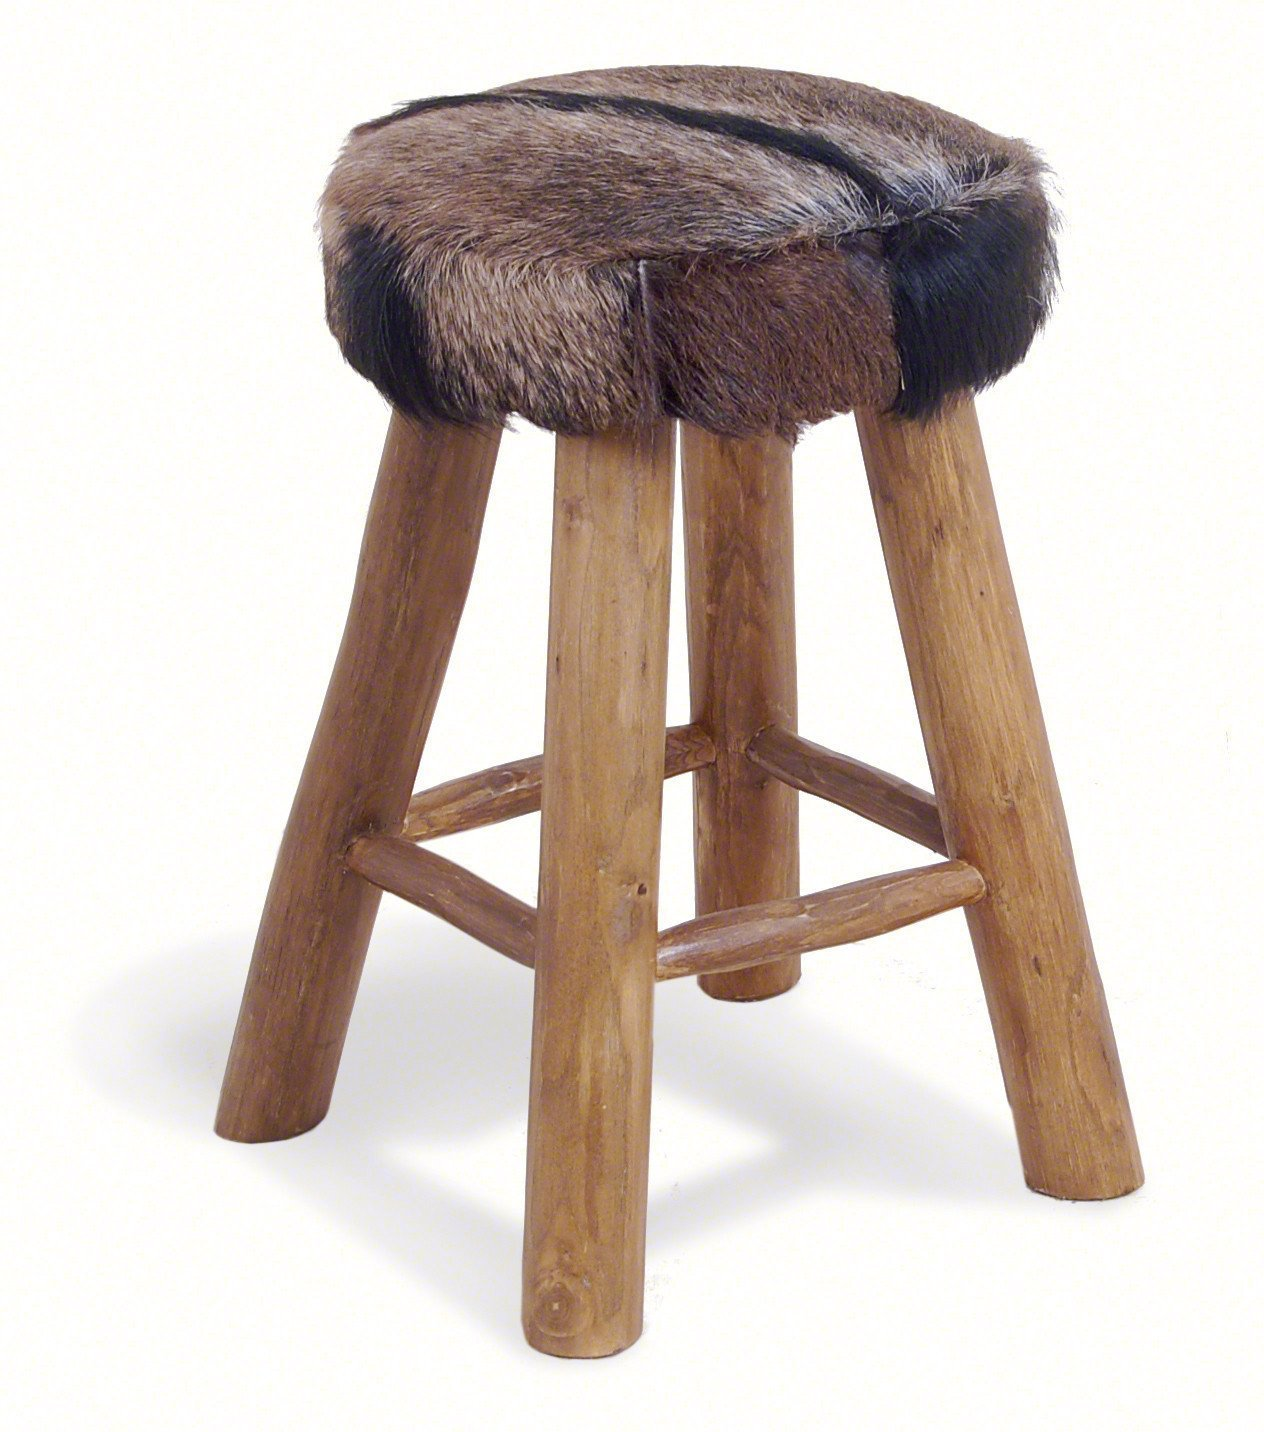 Safari Medium Height Stool-kitchen breakfast medium low bar stools wooden-bluebone-GoFurn Furniture Store Kent